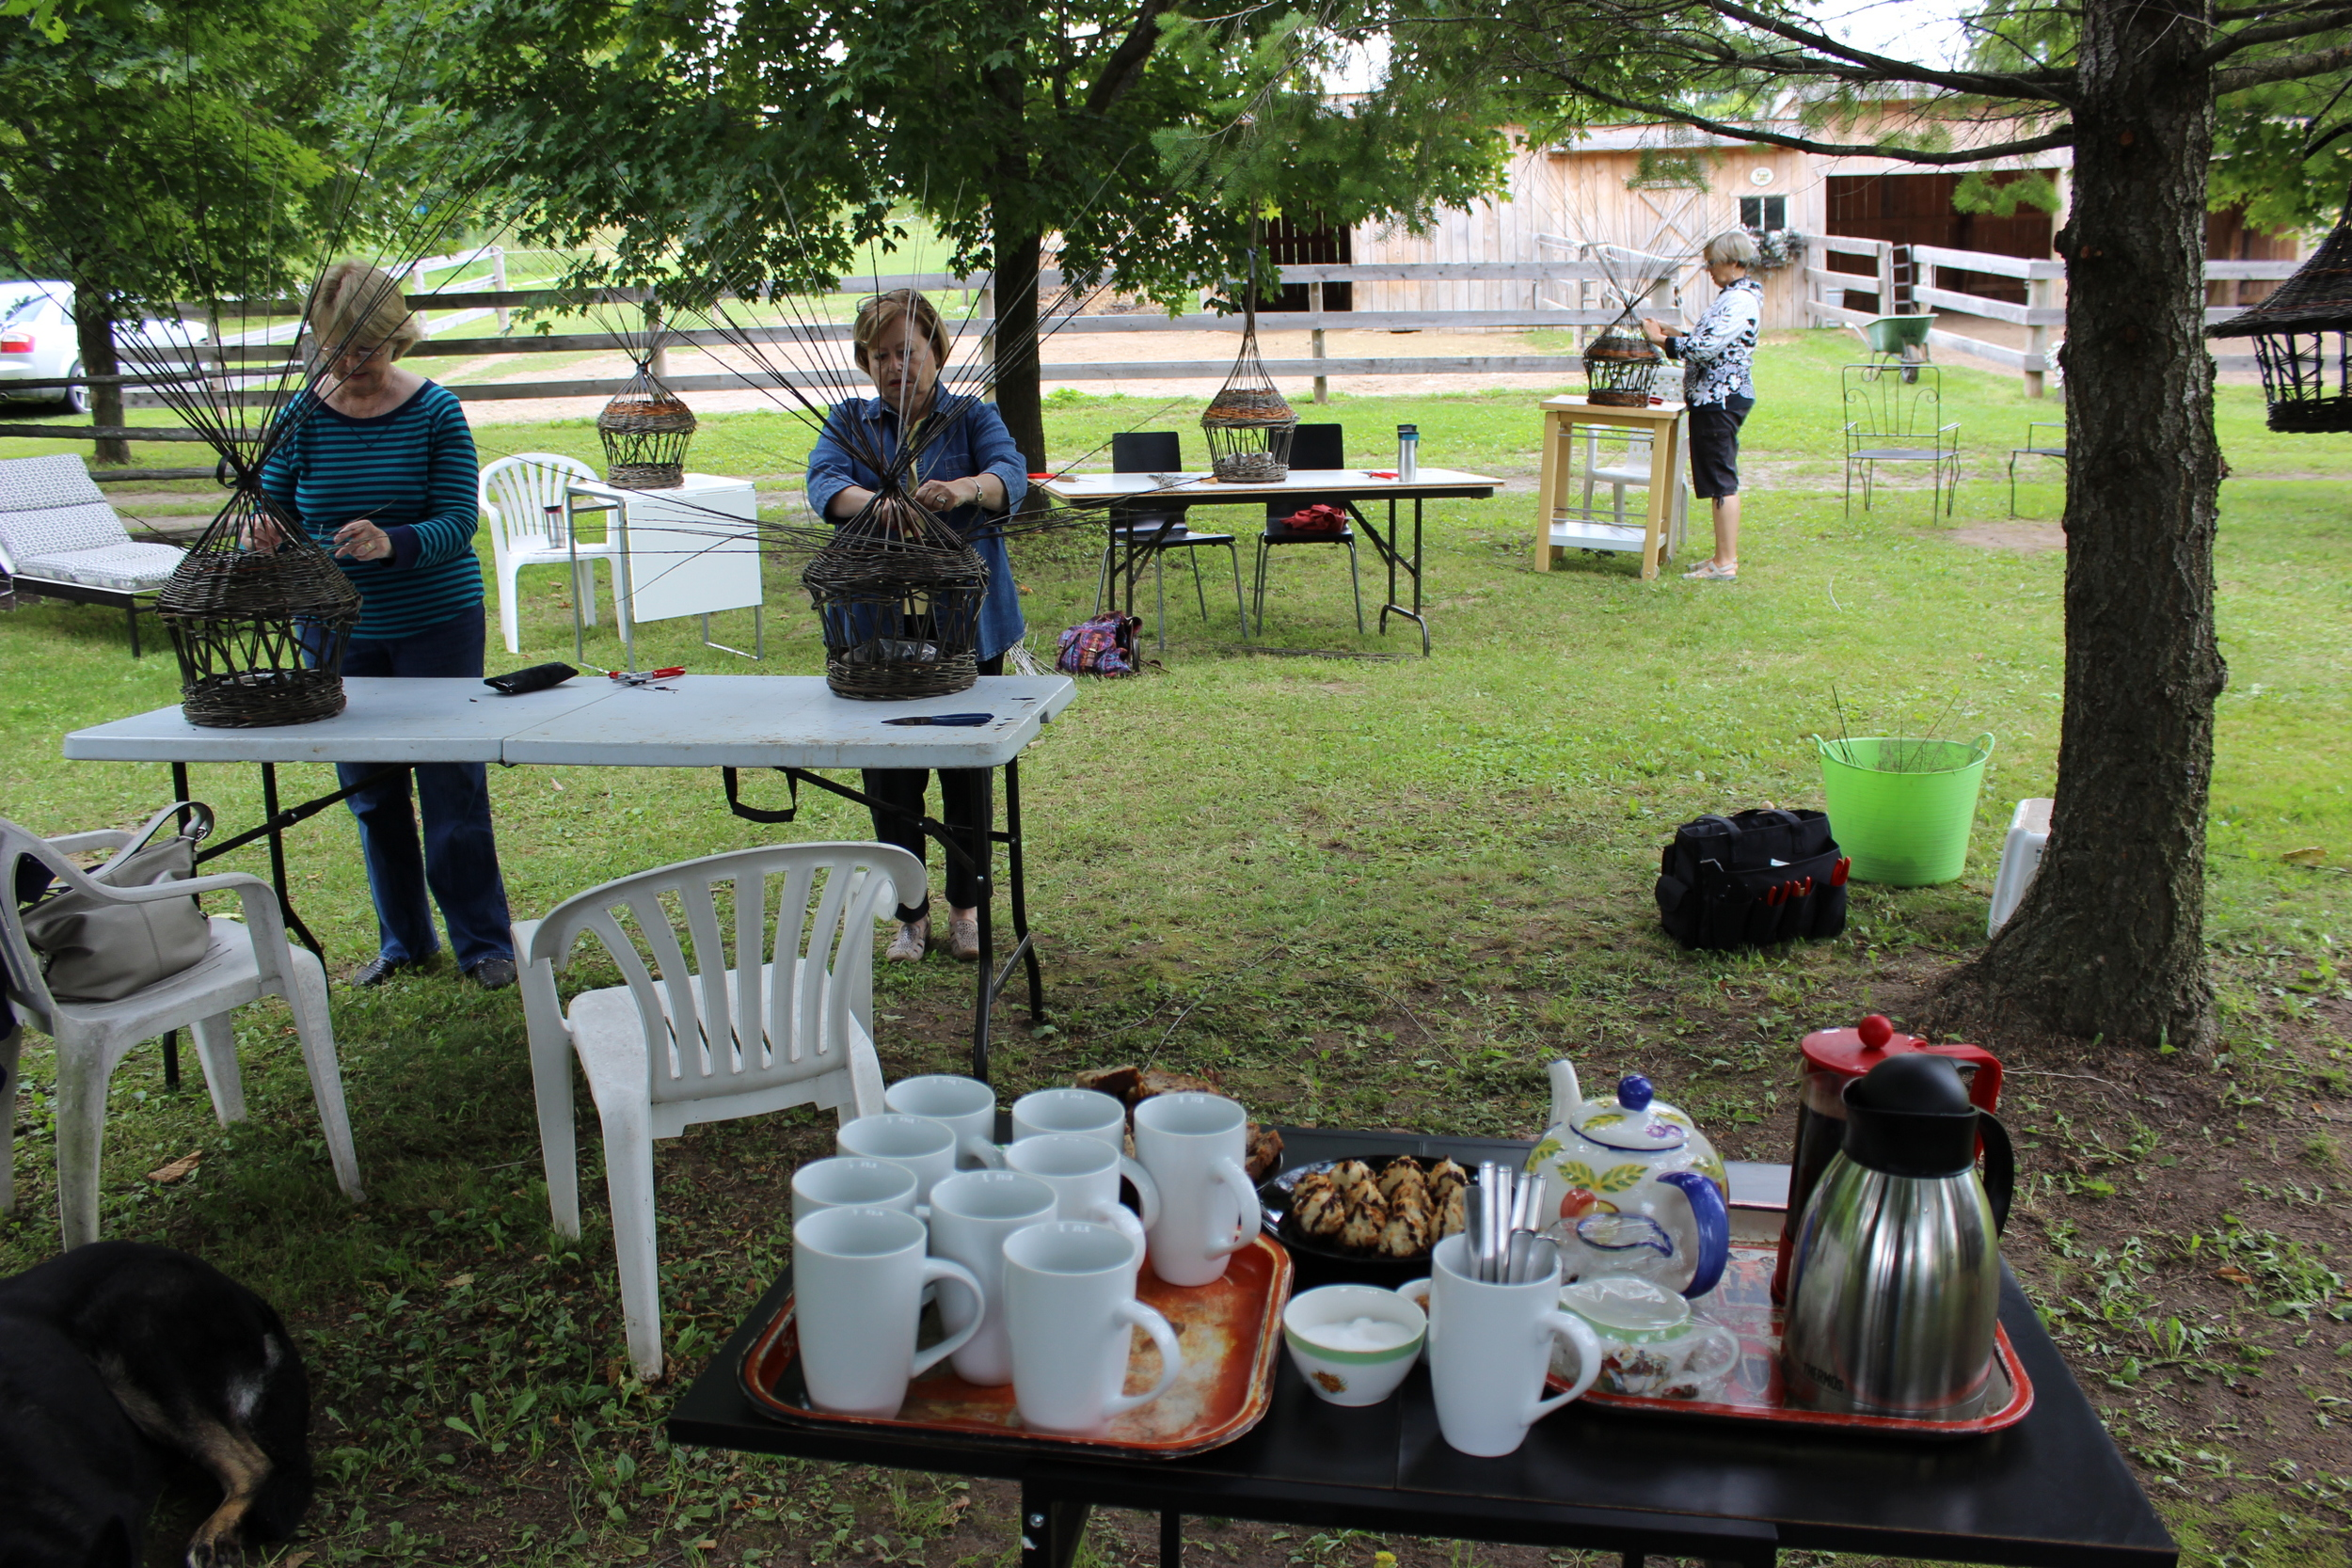 Time for a break...coffee, tea and goodies including our good friend's famous banana bread.